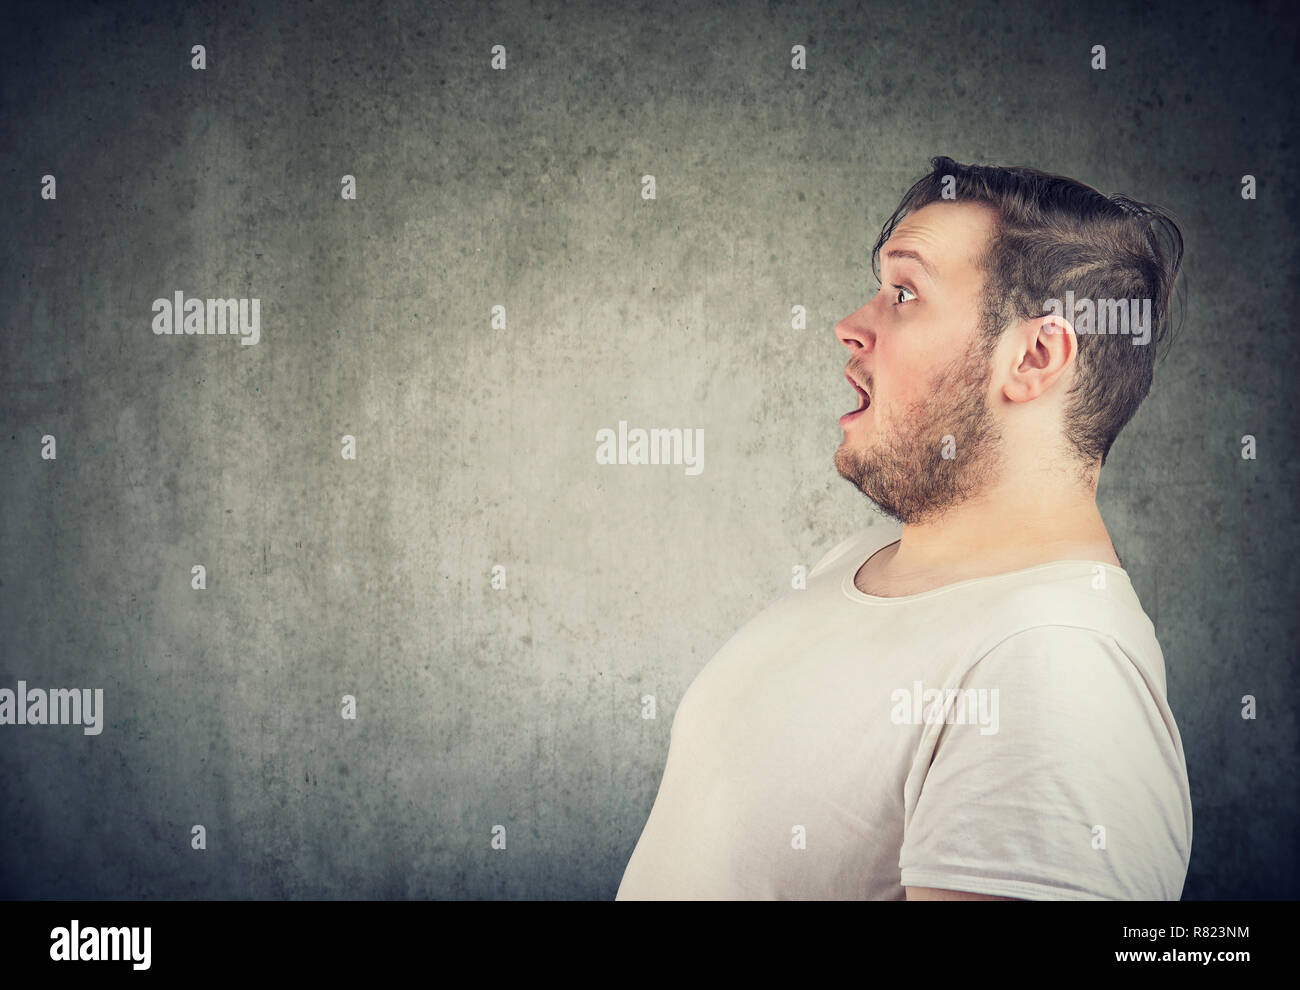 Side view of chubby man in white t-shirt looking away in amazement with mouth opened on gray background - Stock Image